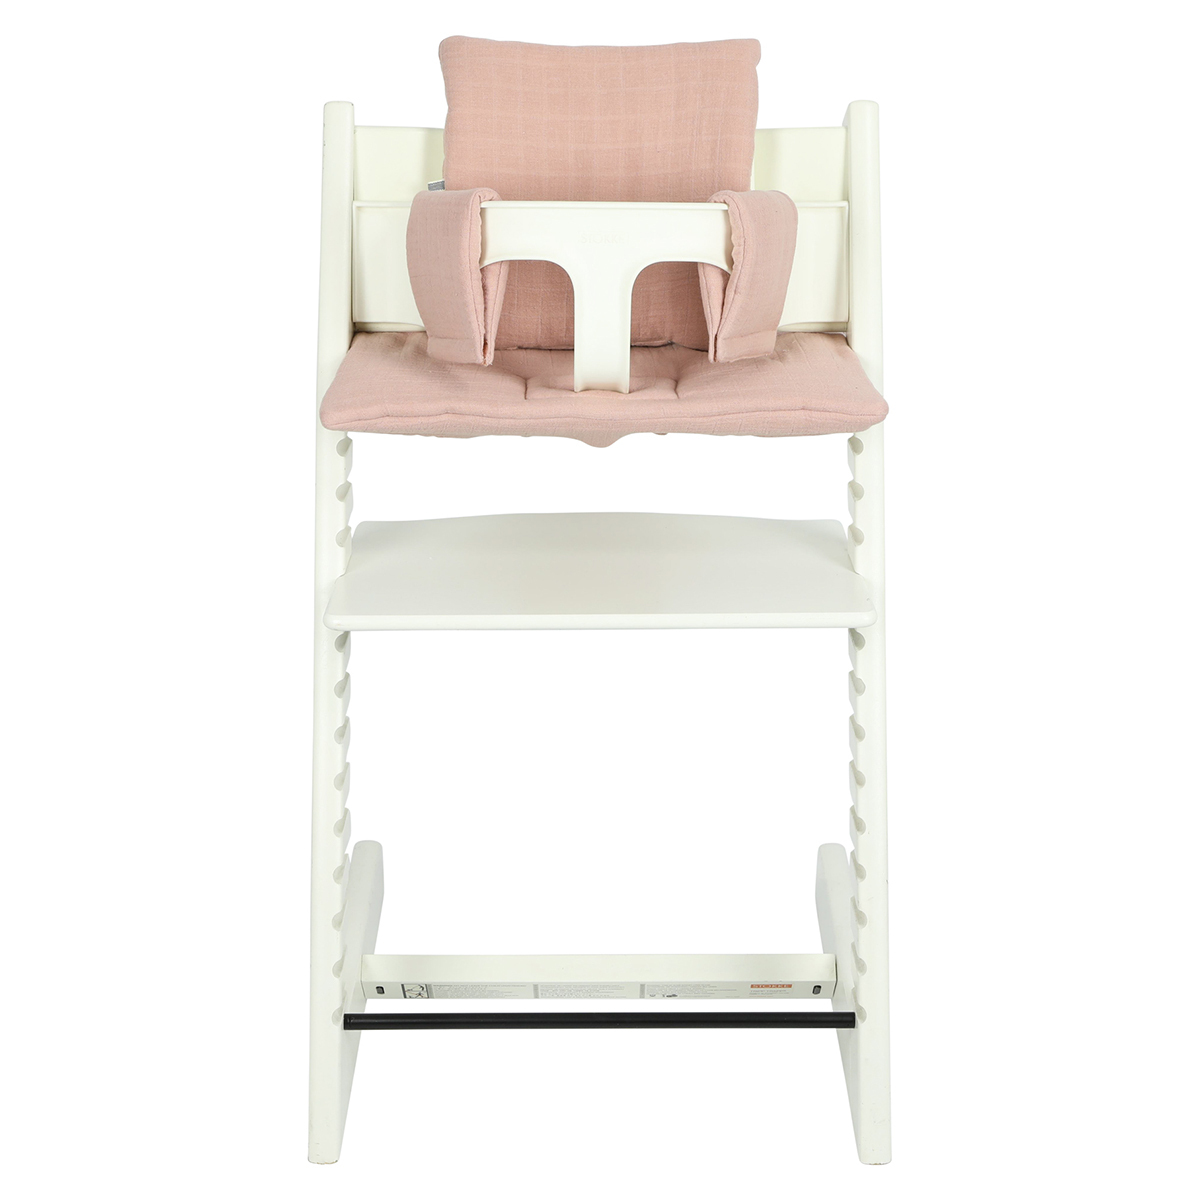 Chaise haute Coussin Classic Tripp Trapp - Bliss Rose Coussin Classic Tripp Trapp - Bliss Rose